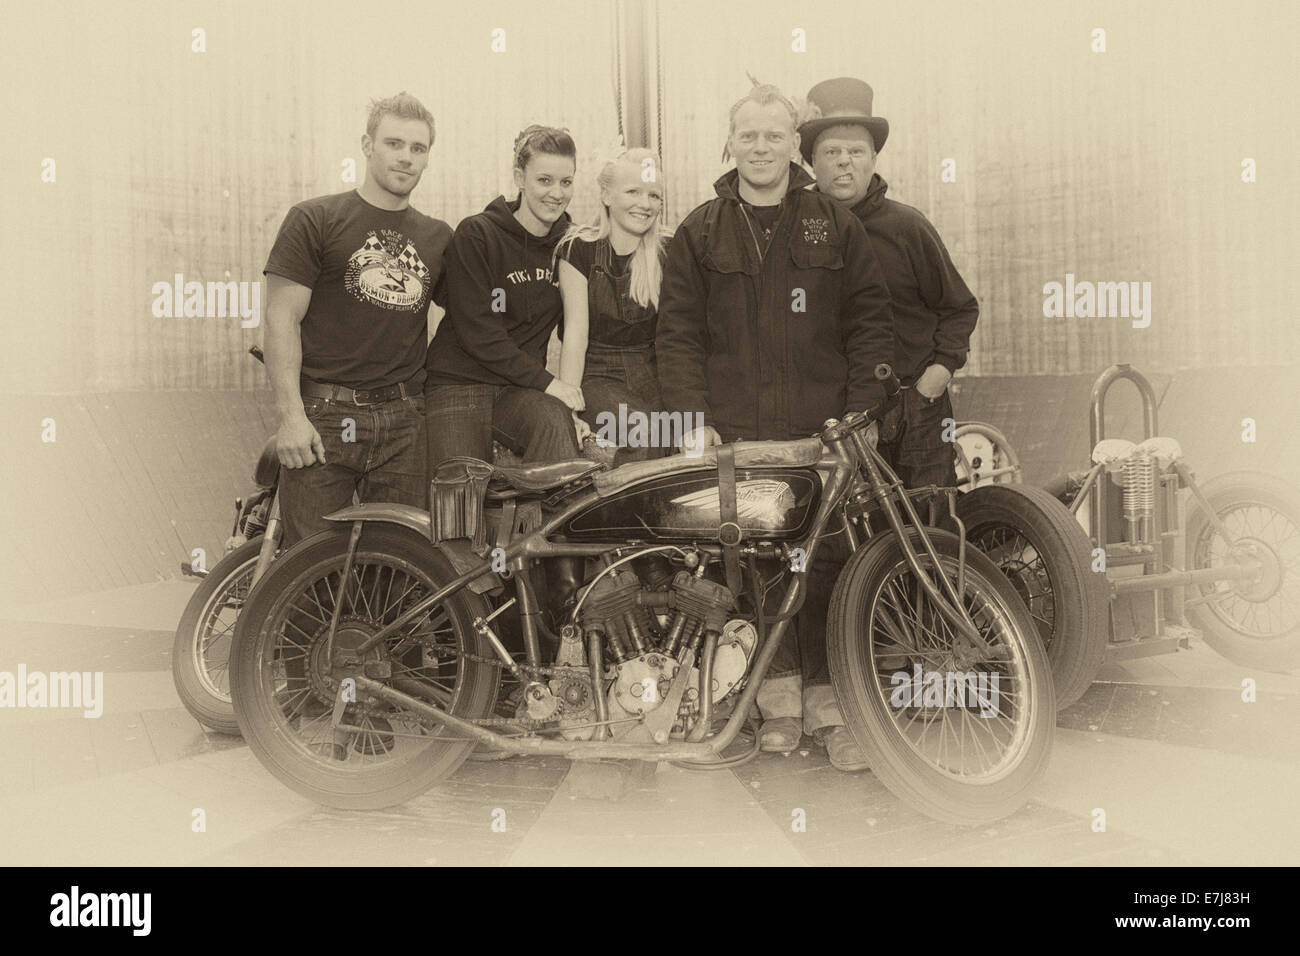 Demon Drome wall of death Goodwood - Stock Image